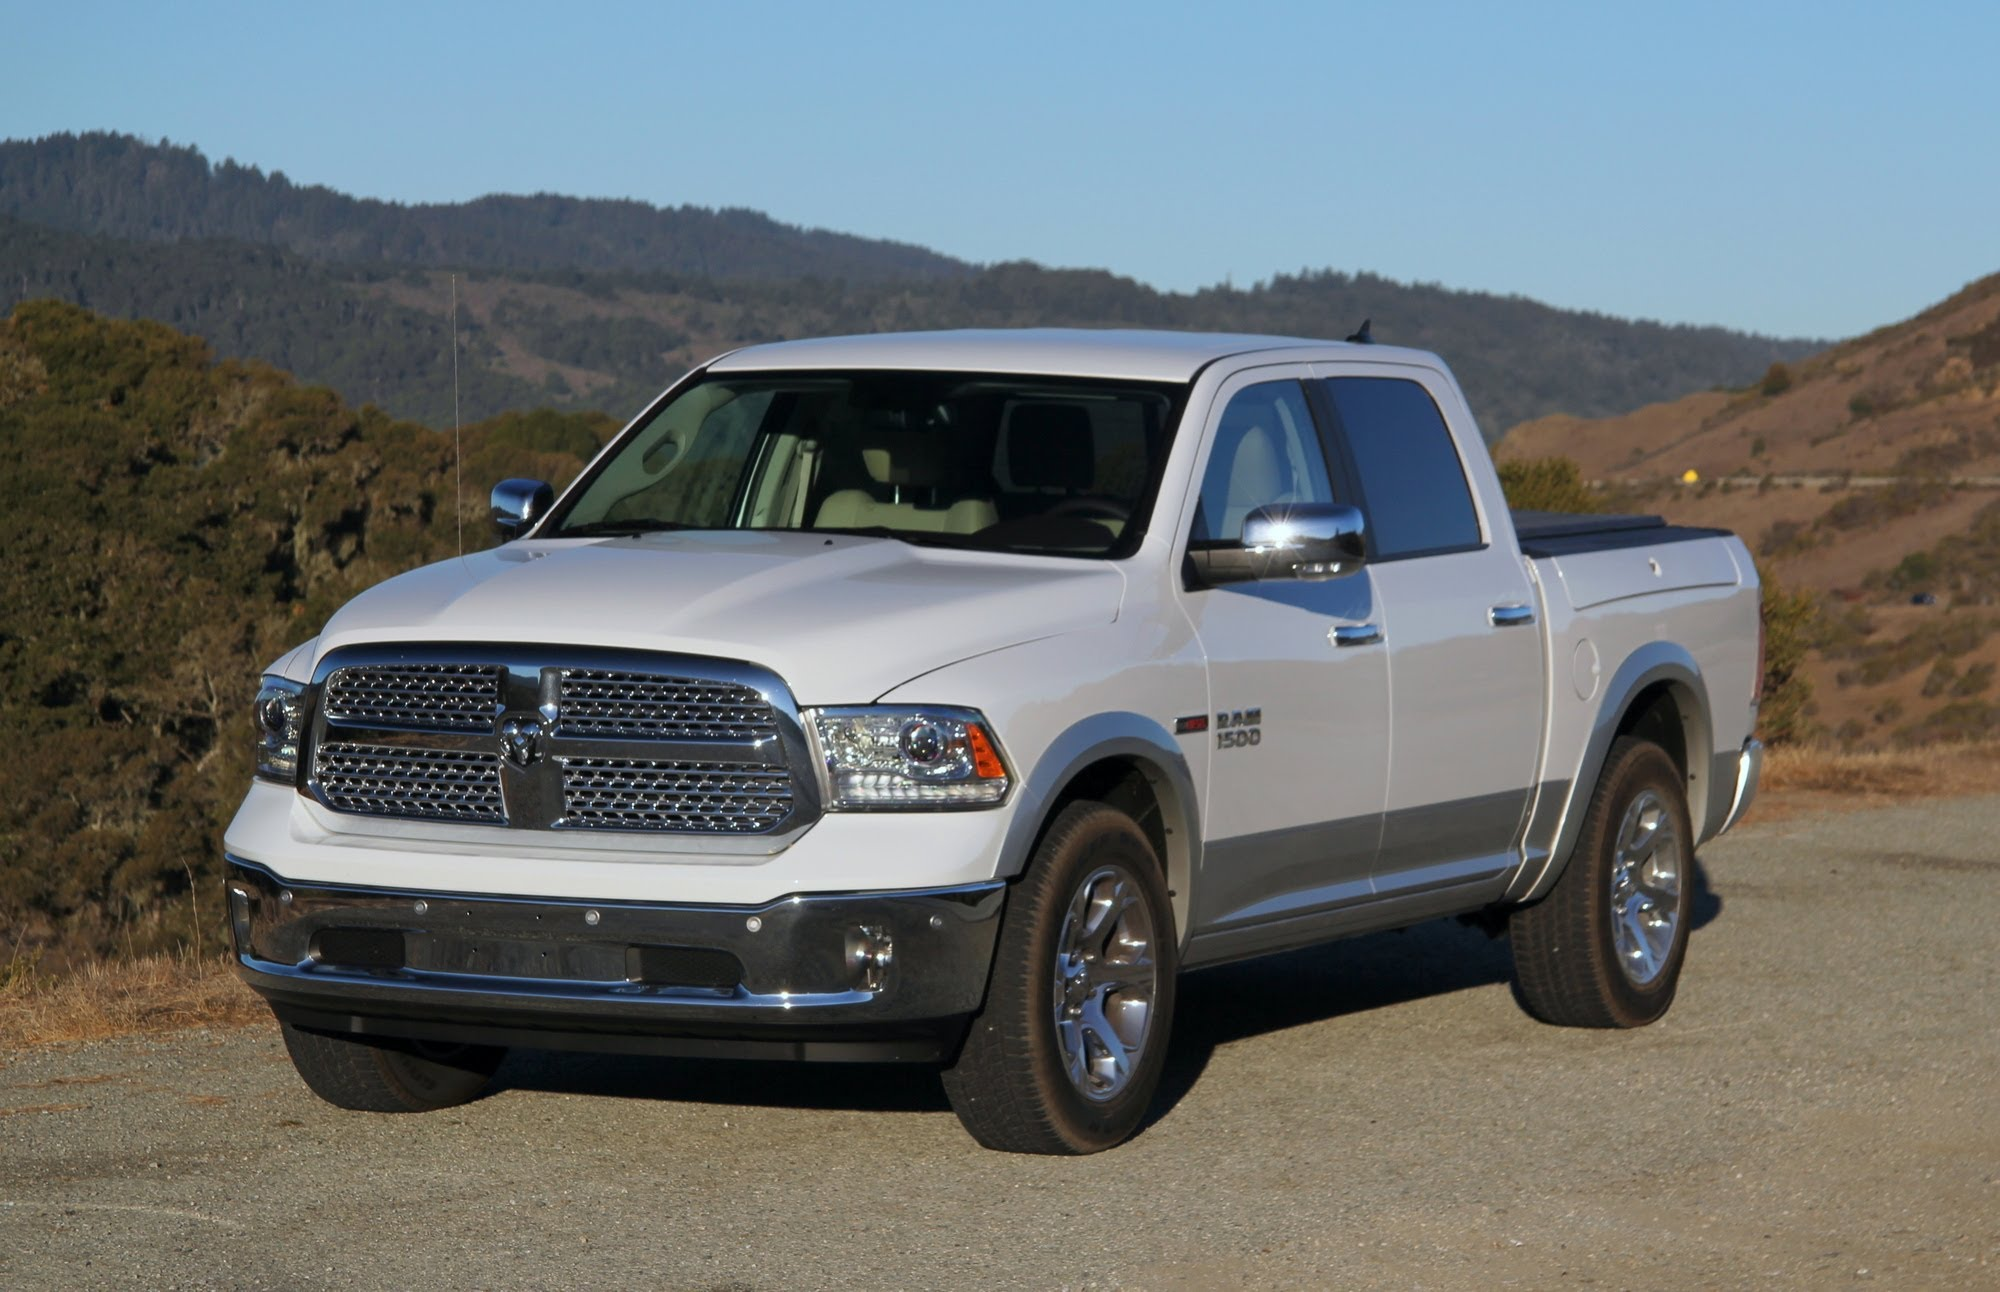 2015 RAM 1500 Ecodiesel front side